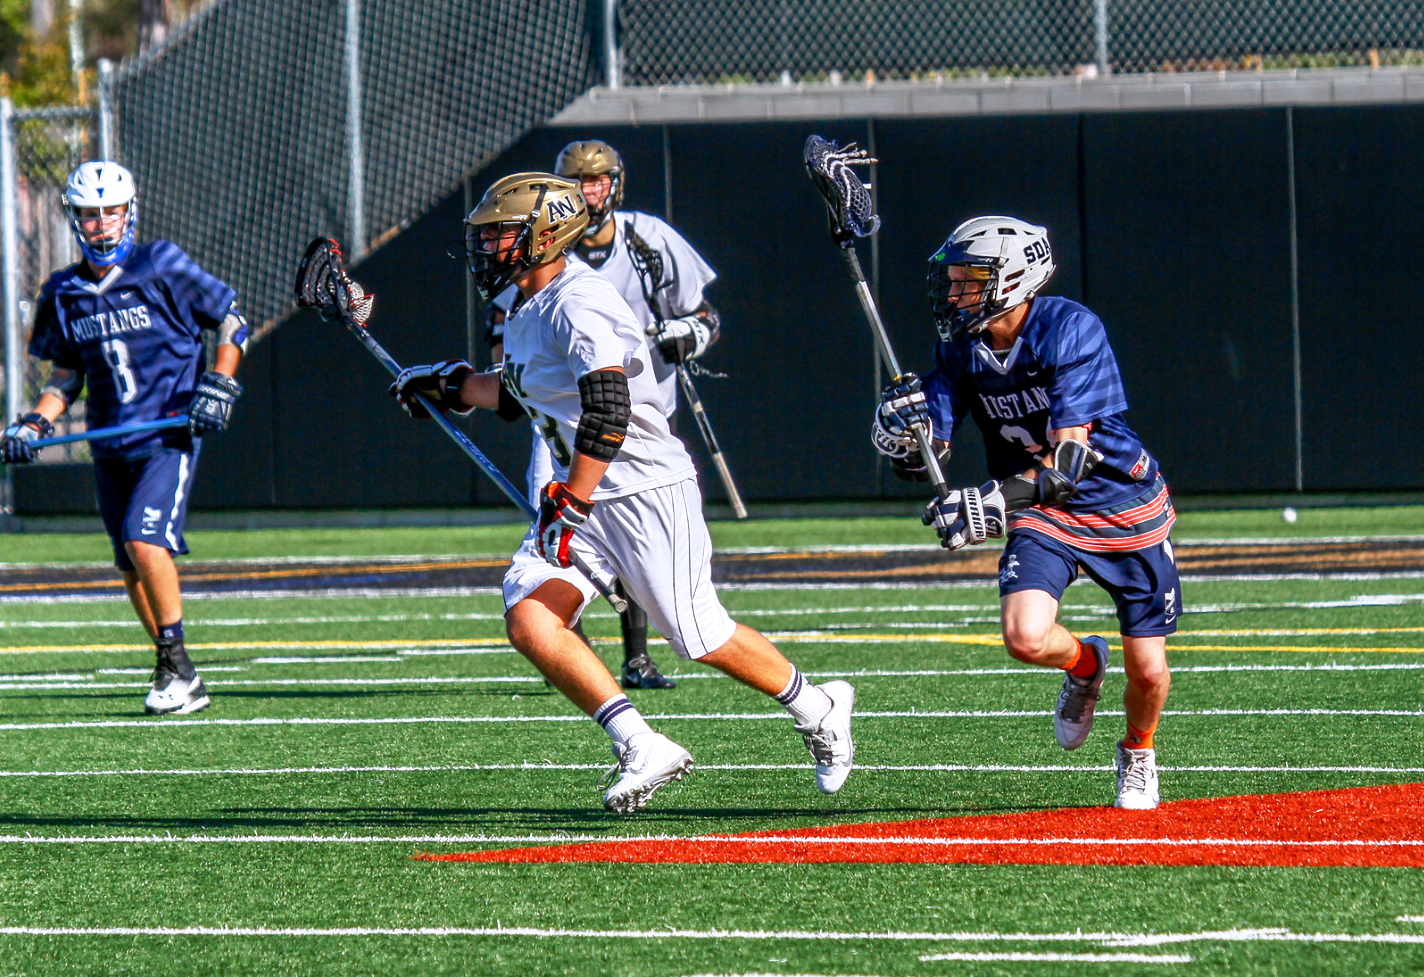 Why Lacrosse is the Sport of Choice of Today's Youth